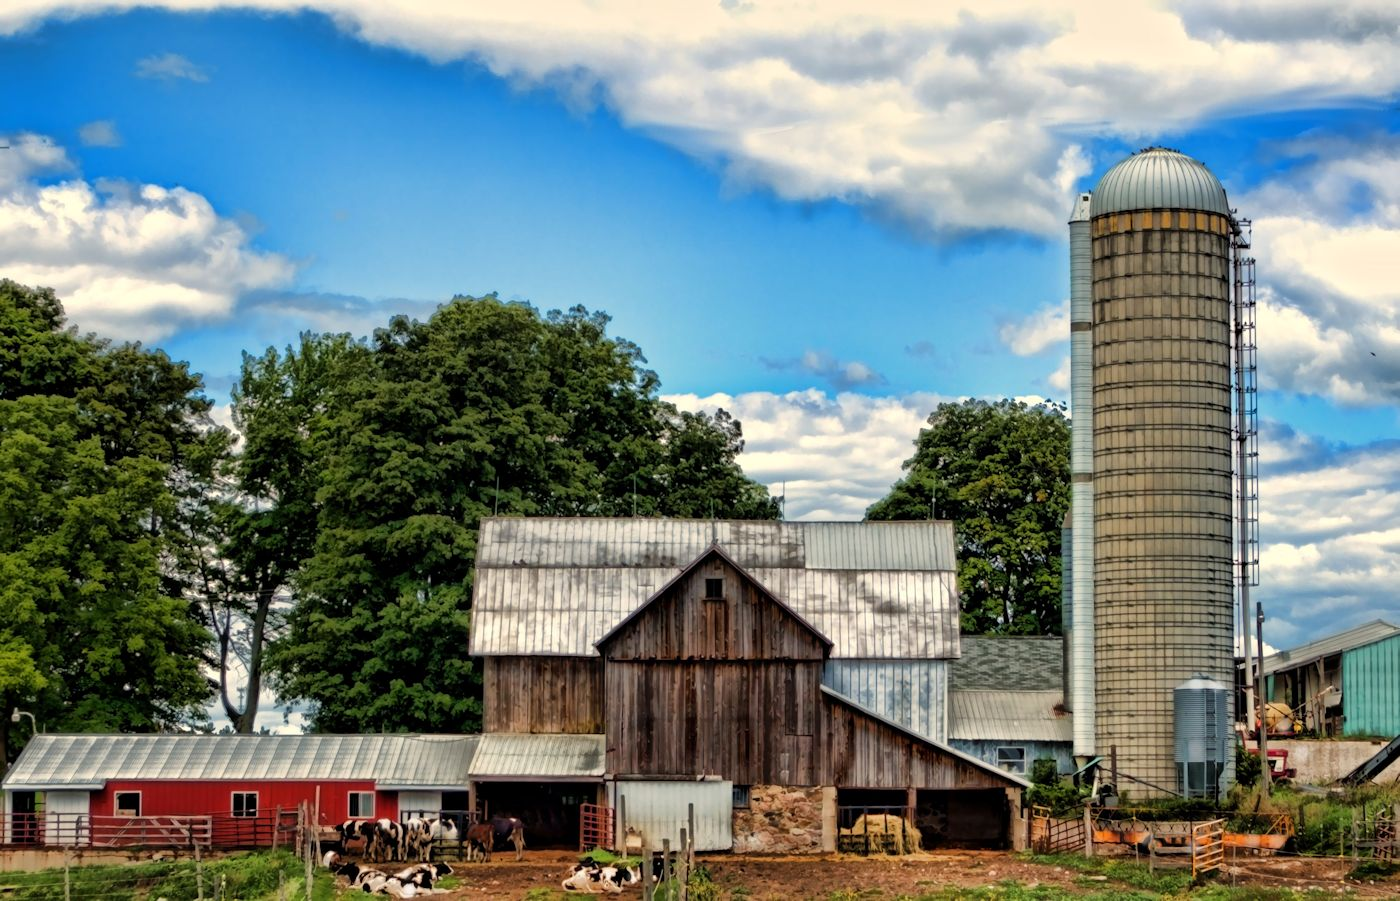 Post your barns and rural structures.-barnyard2-1400.jpg